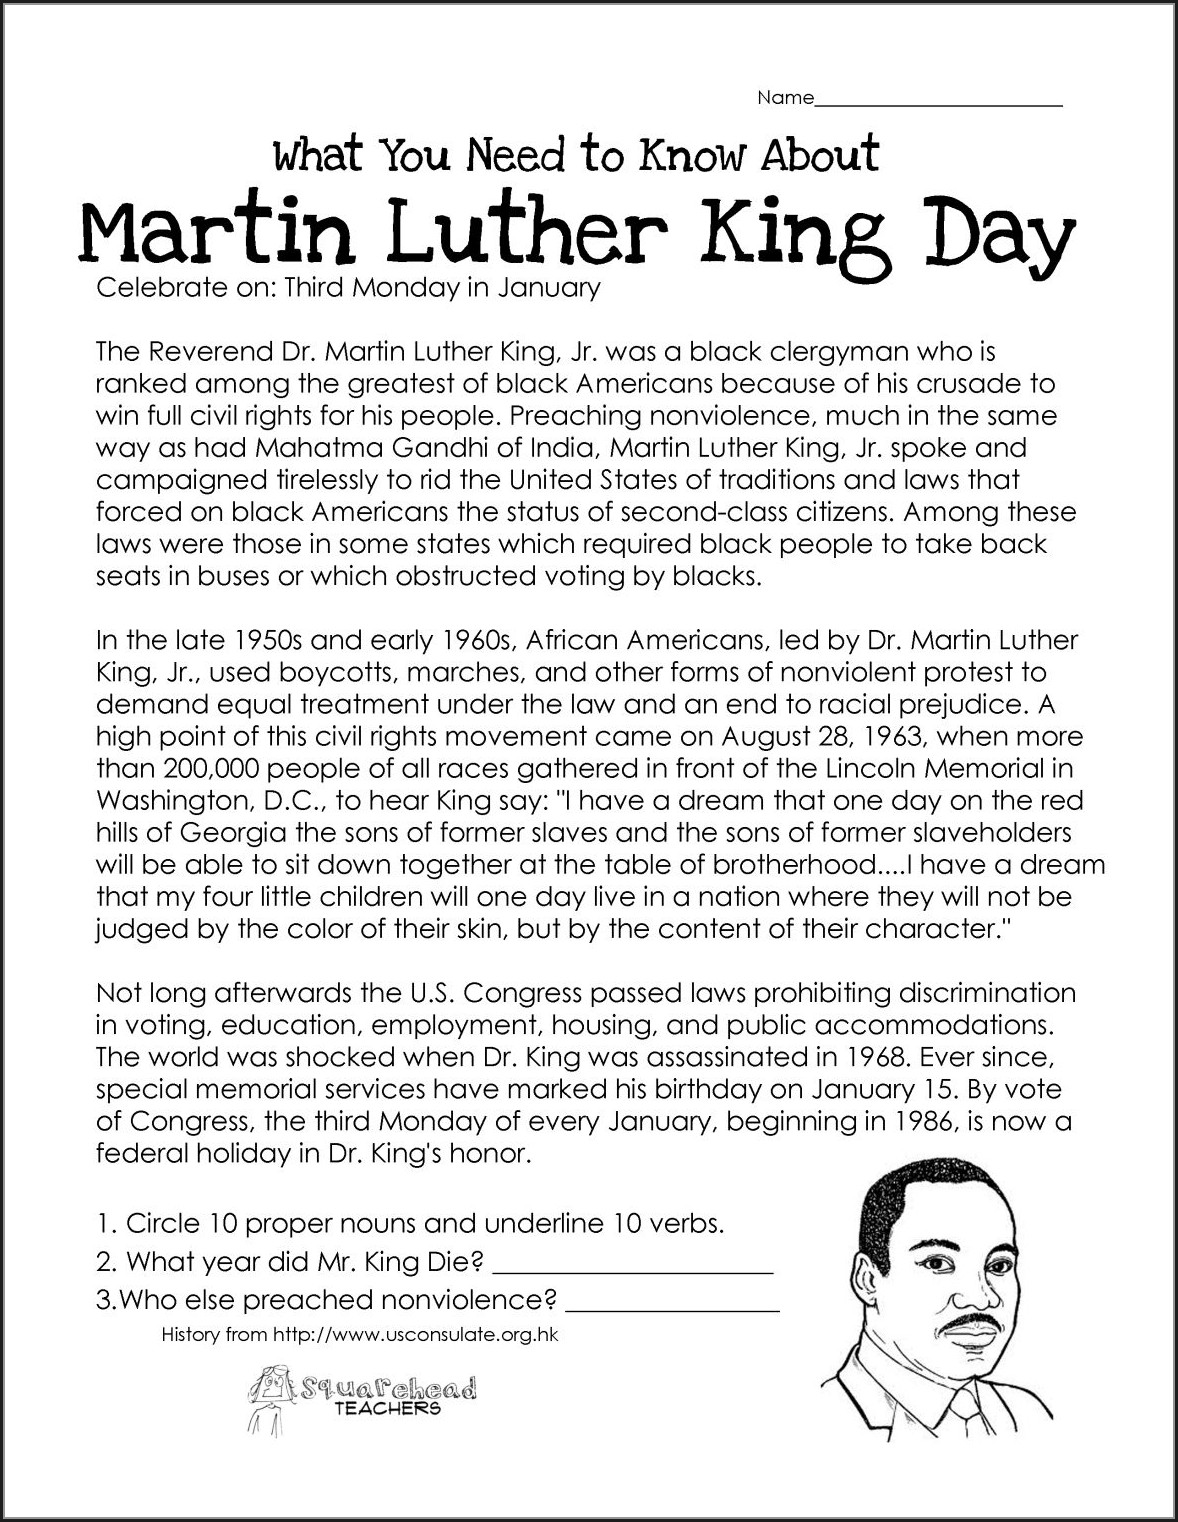 Middle School Martin Luther King Jr Timeline Worksheet